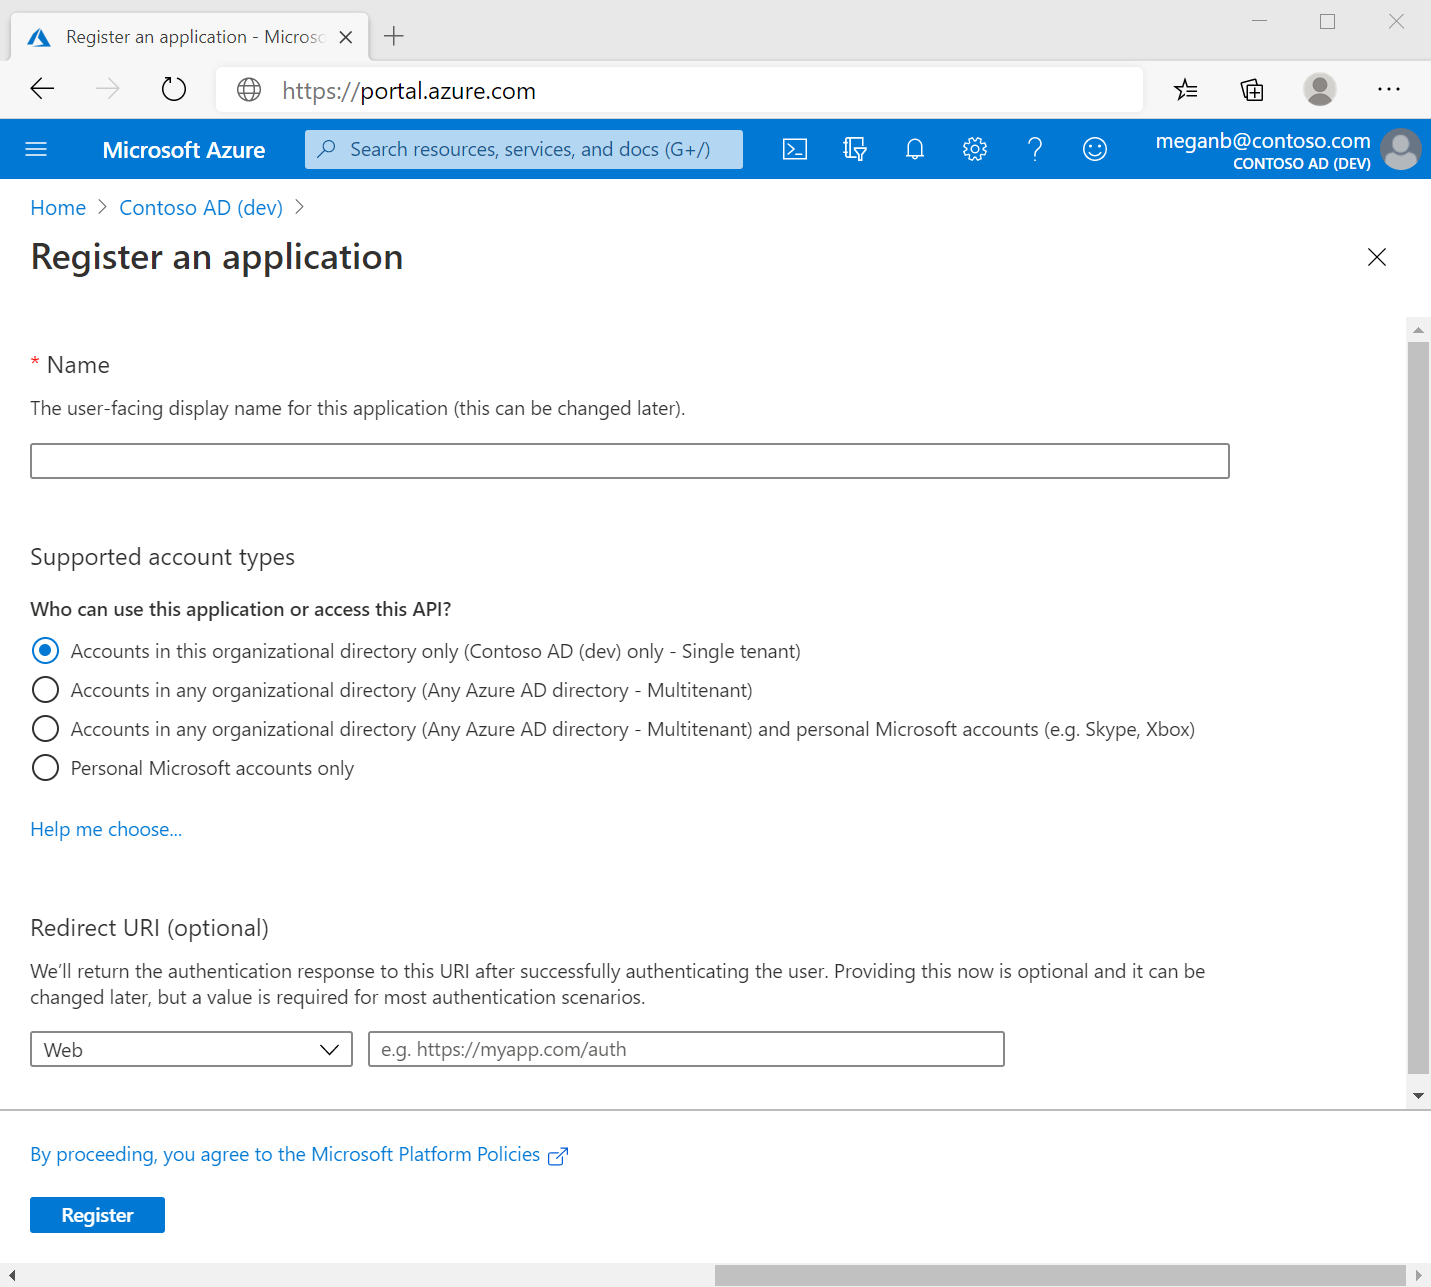 Screenshot of the Azure portal in a web browser, showing the Register an application pane.